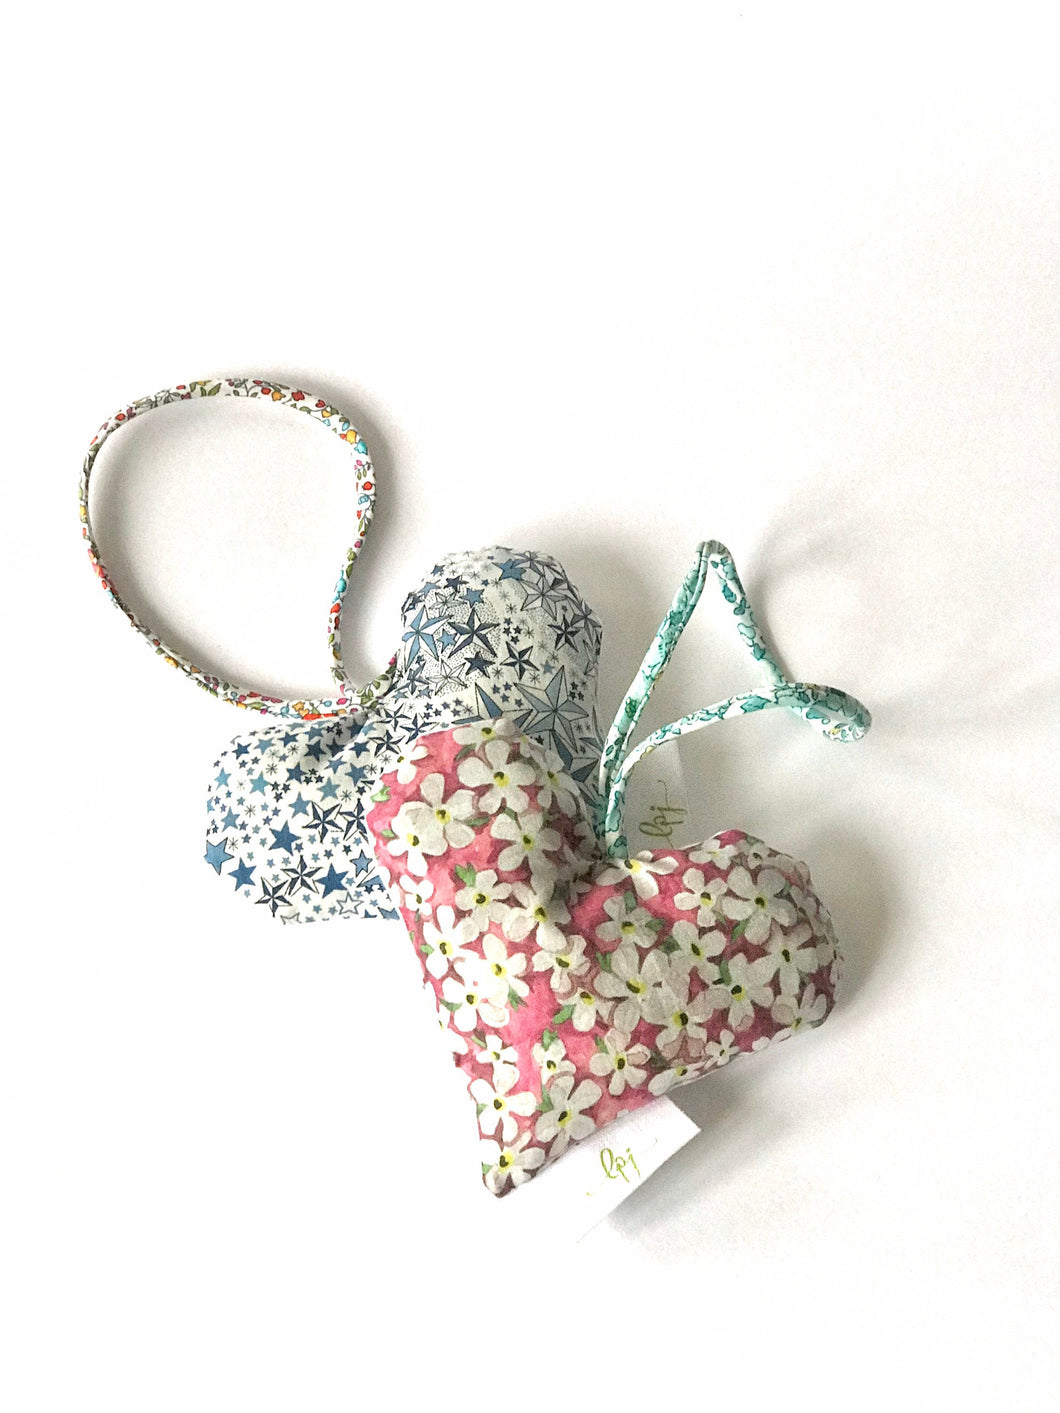 Liberty heart lavender bag